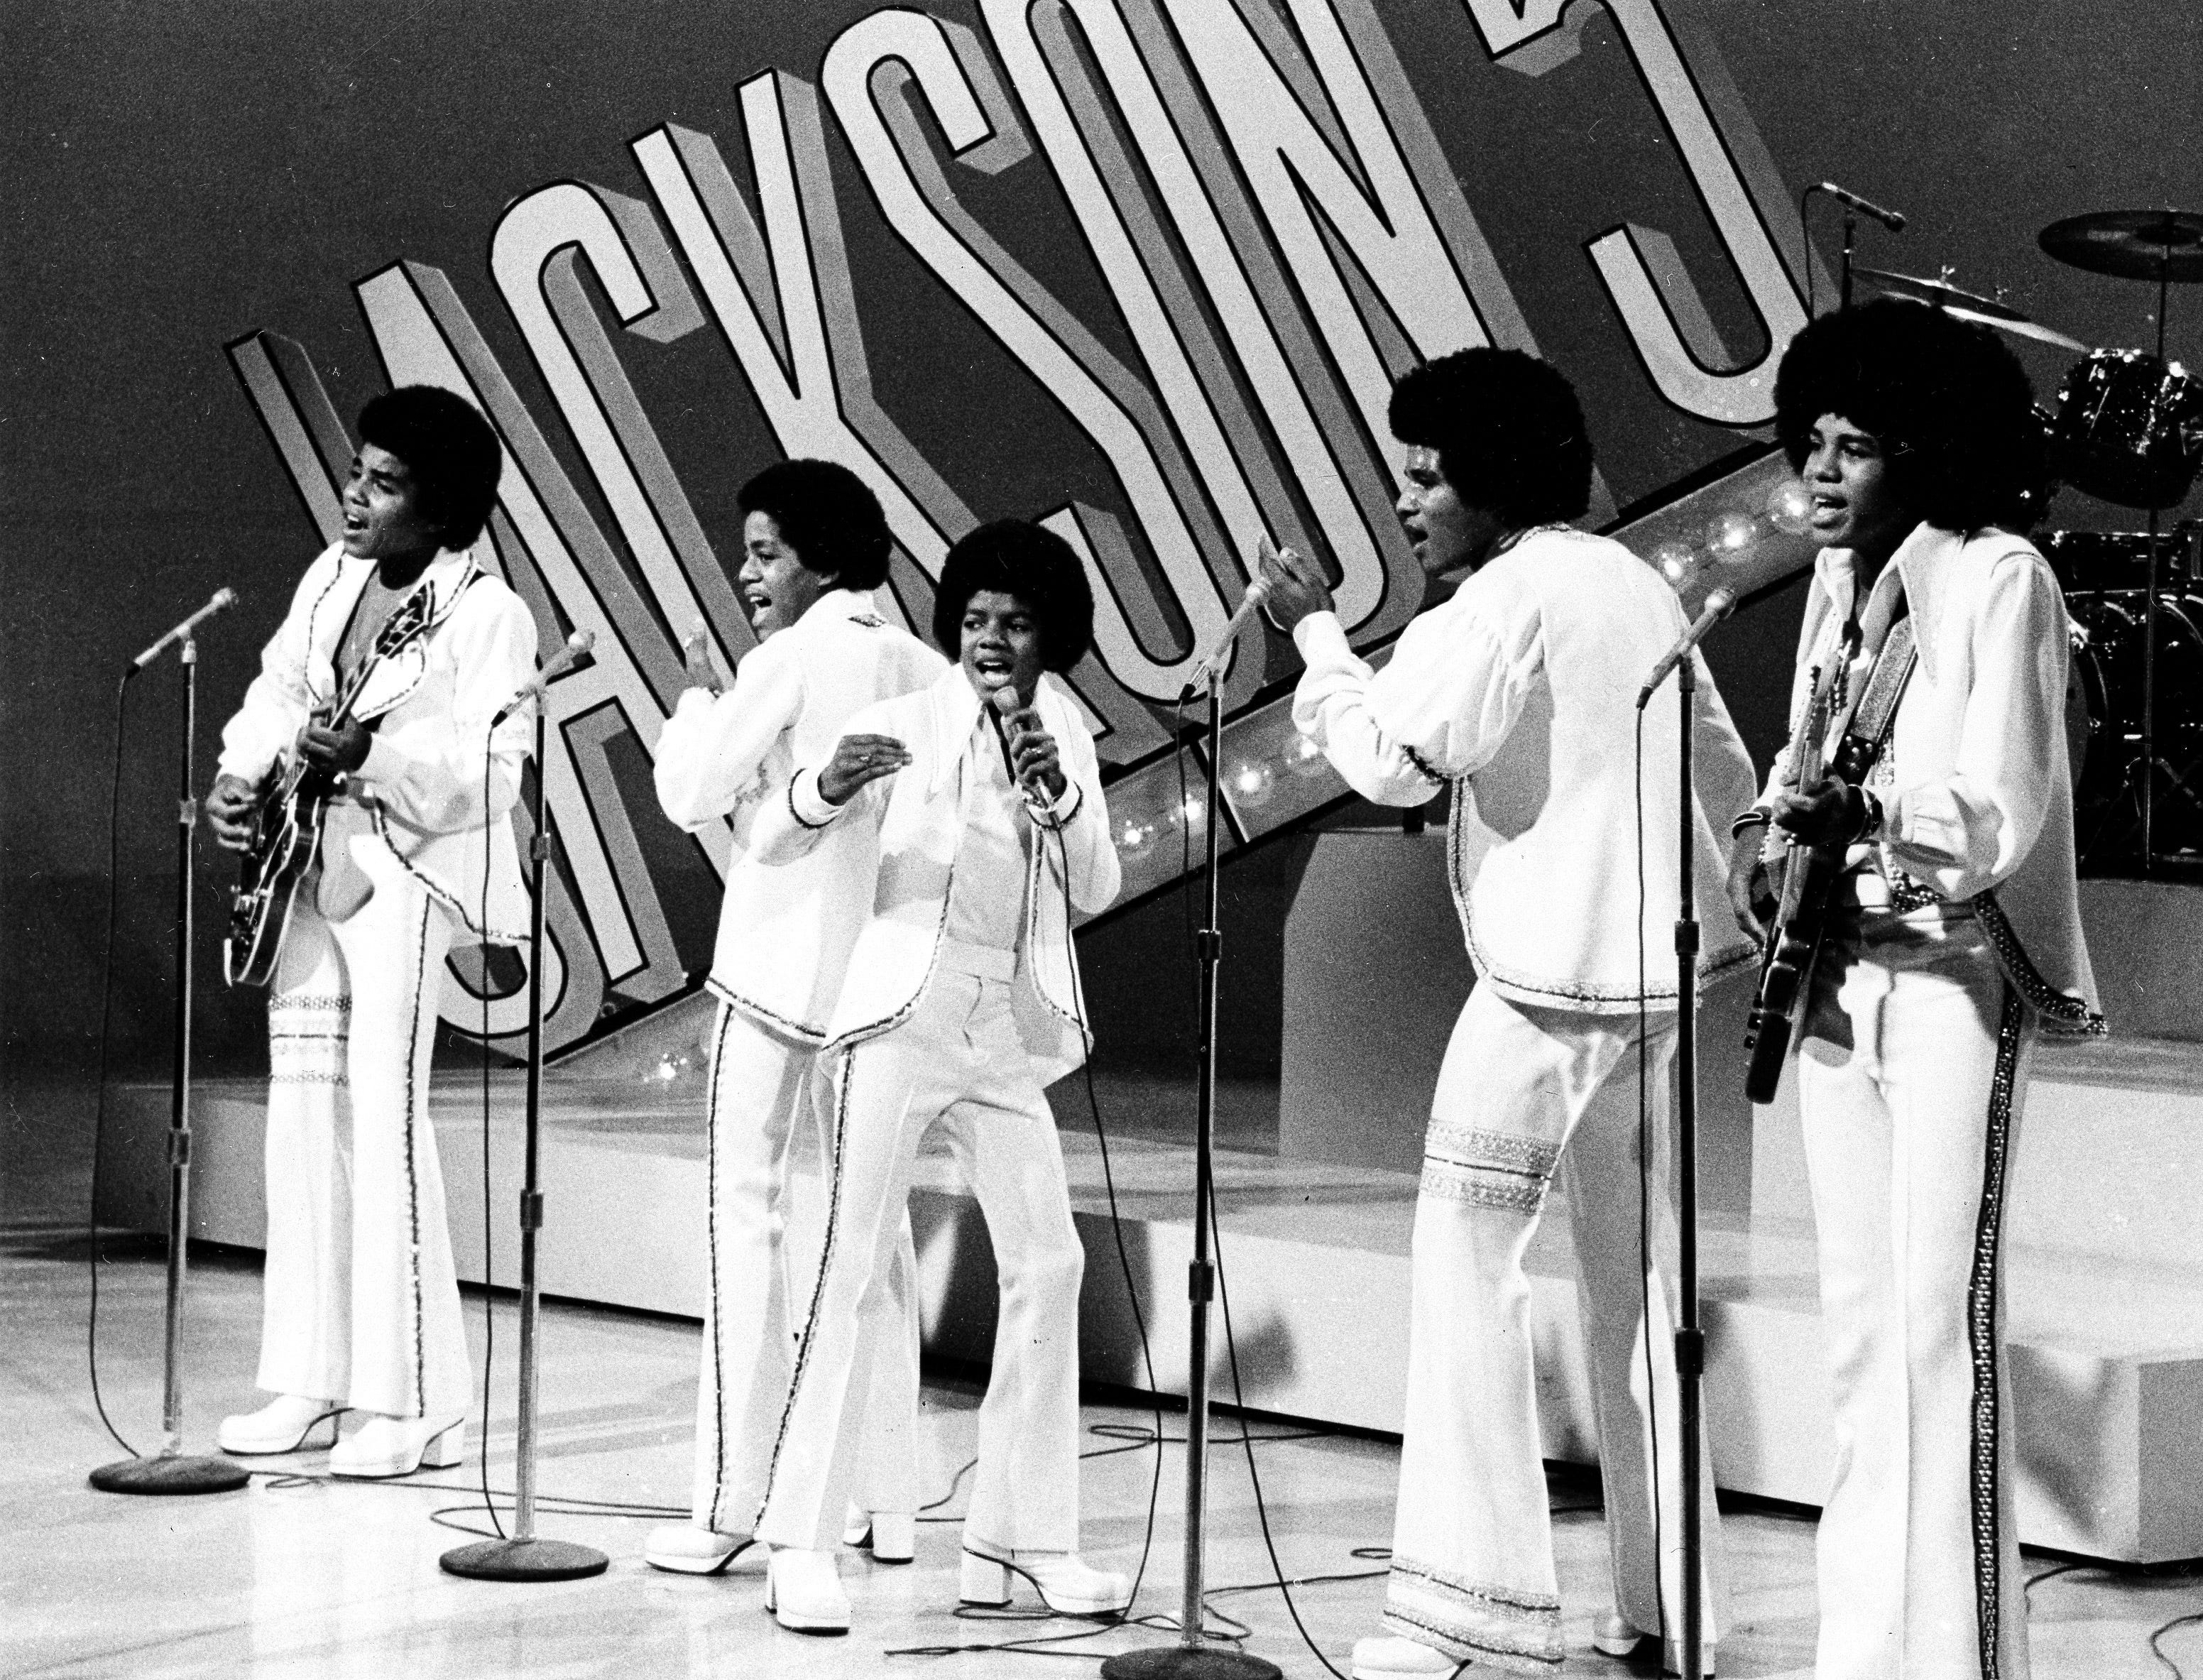 """The Jackson 5 perform during the """"Sonny and Cher Comedy Hour"""" in Los Angeles, Calif., Sept. 15, 1972.  The brothers, from left to right, are, Tito; Marlon; lead singer Michael, the youngest; Jackie; and Jermaine."""